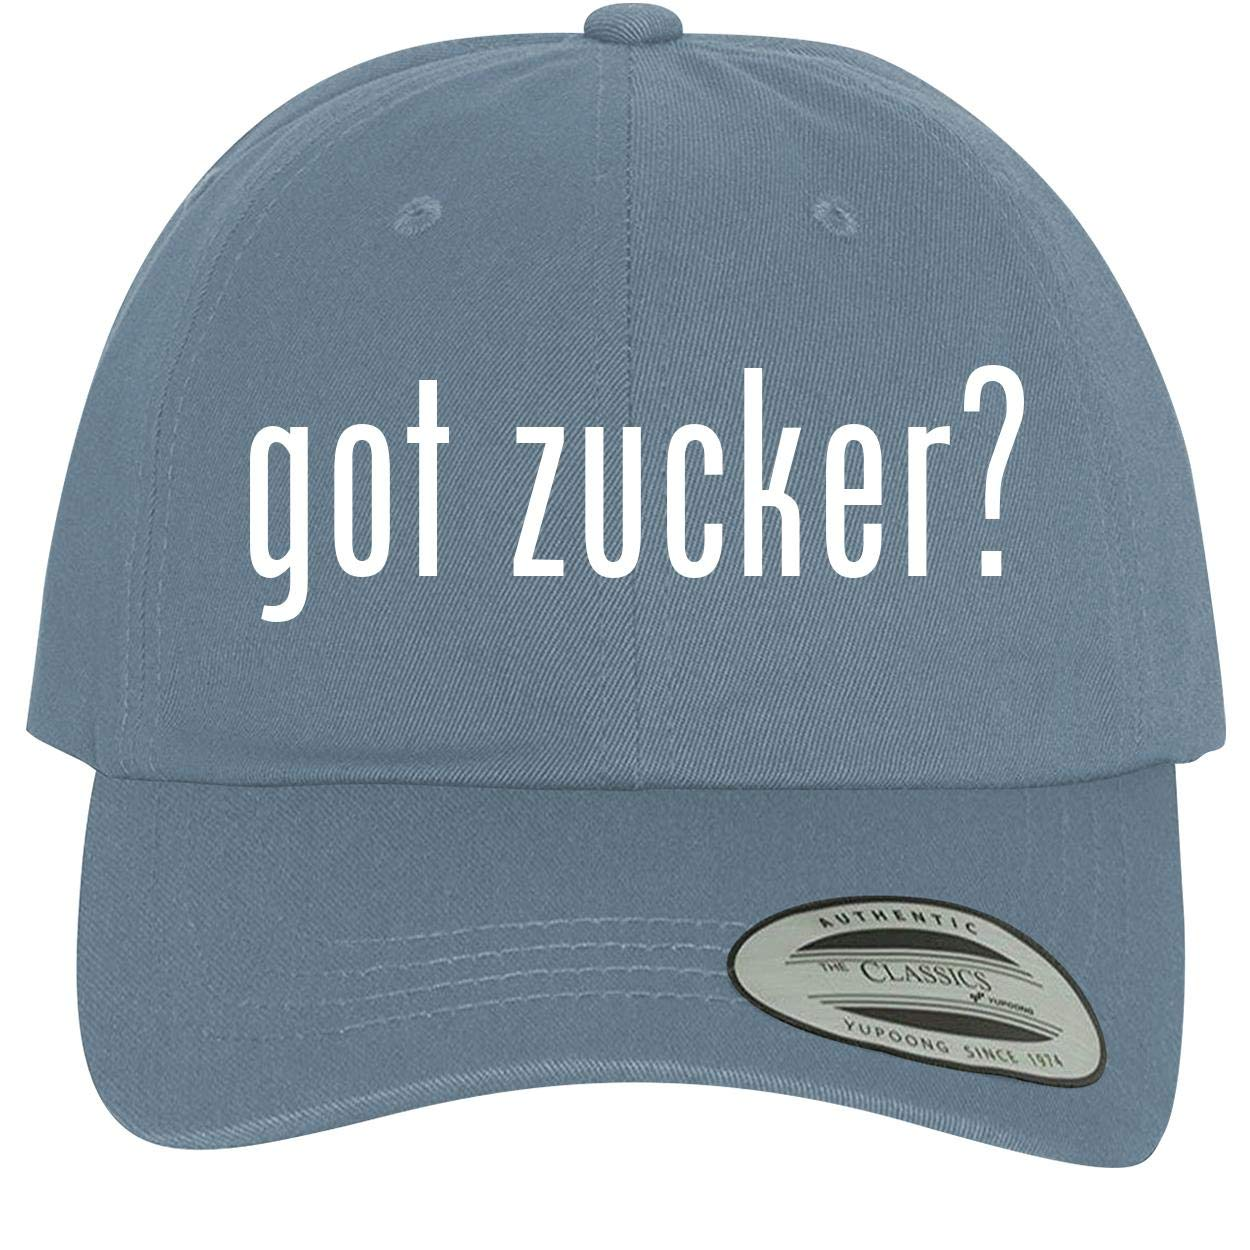 BH Cool Designs got Zucker? Comfortable Dad Hat Baseball Cap